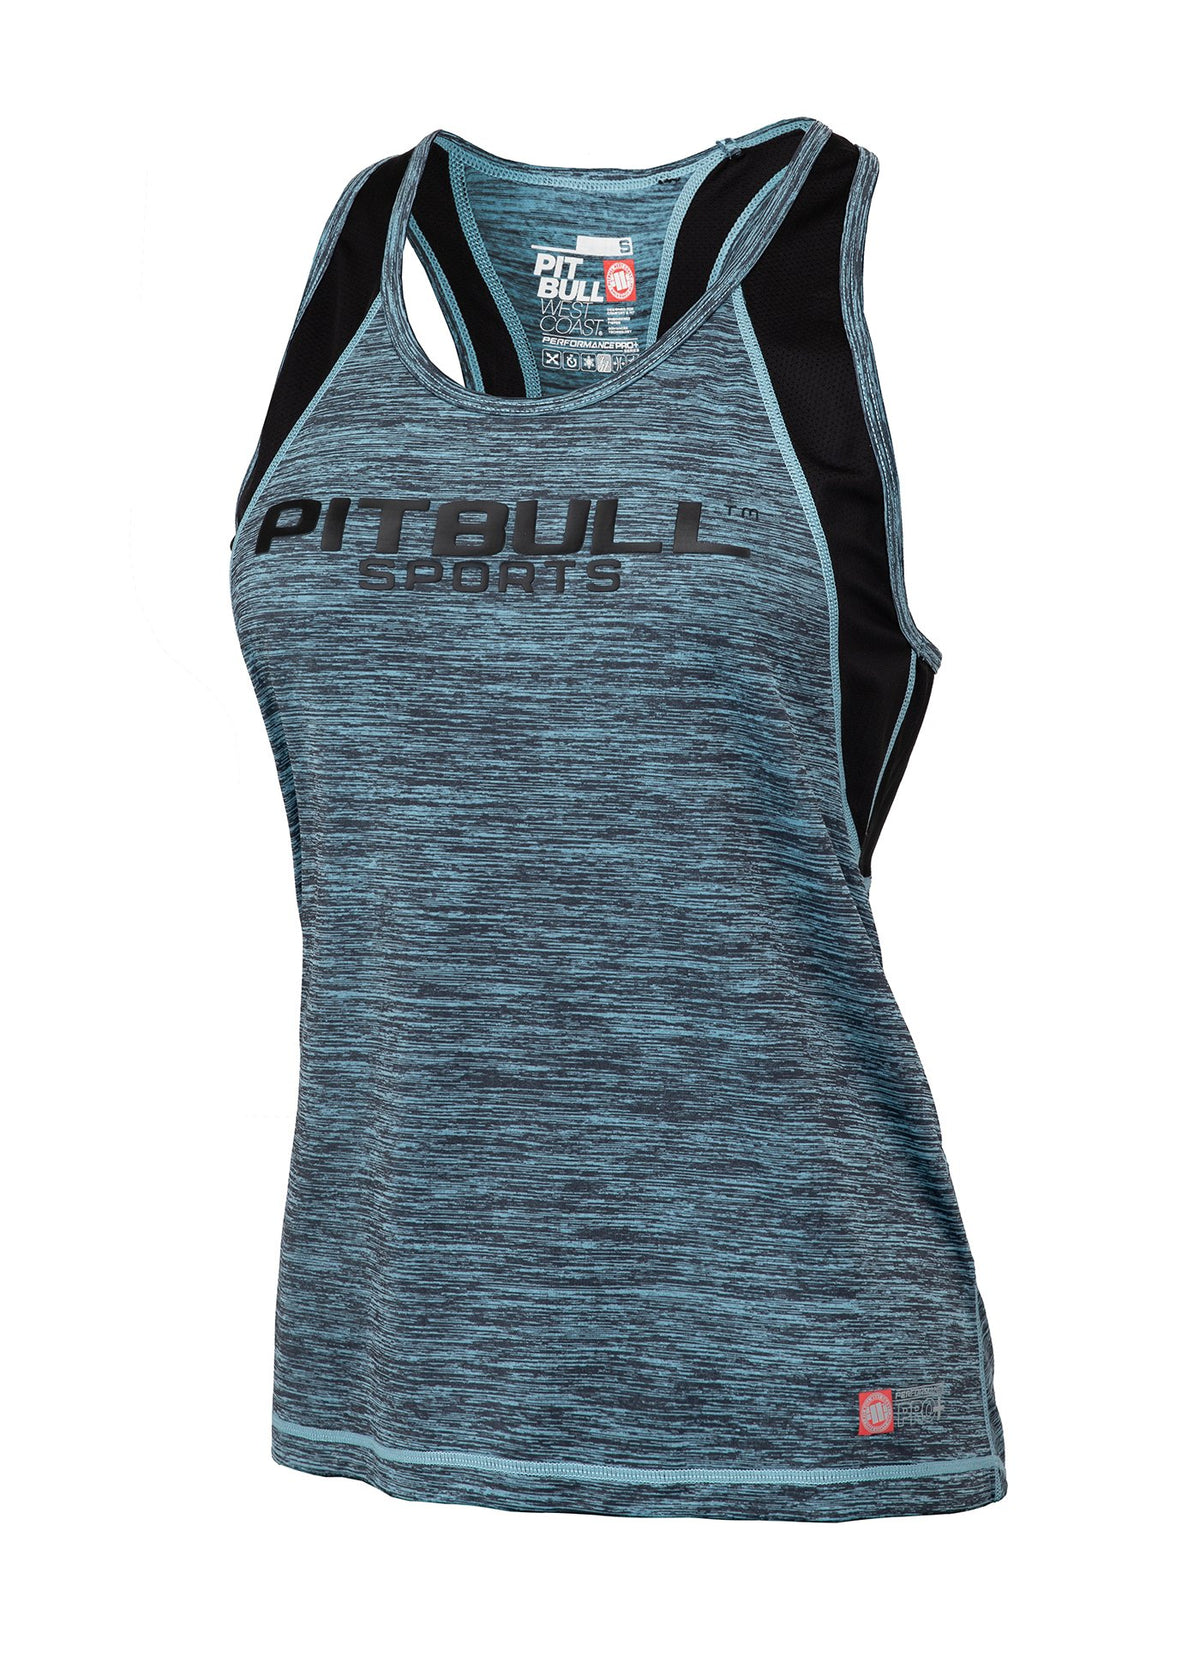 WOMEN TANK TOP PERFORMANCE MLG Turquoise Melange - Pitbull West Coast U.S.A.